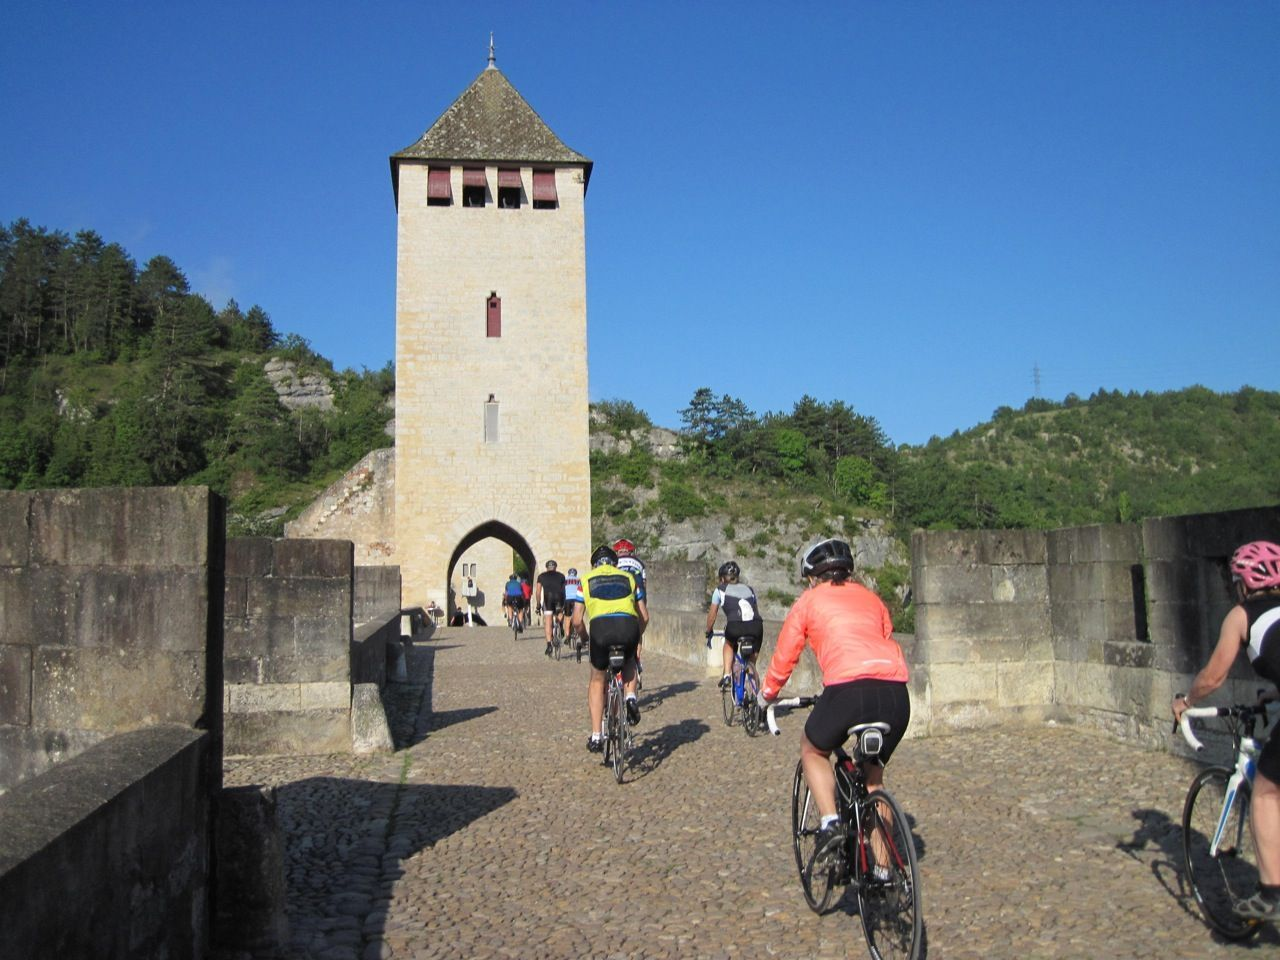 _Staff.348.18295.jpg - France - Haute Dordogne - Guided Road Cycling Holiday - Road Cycling